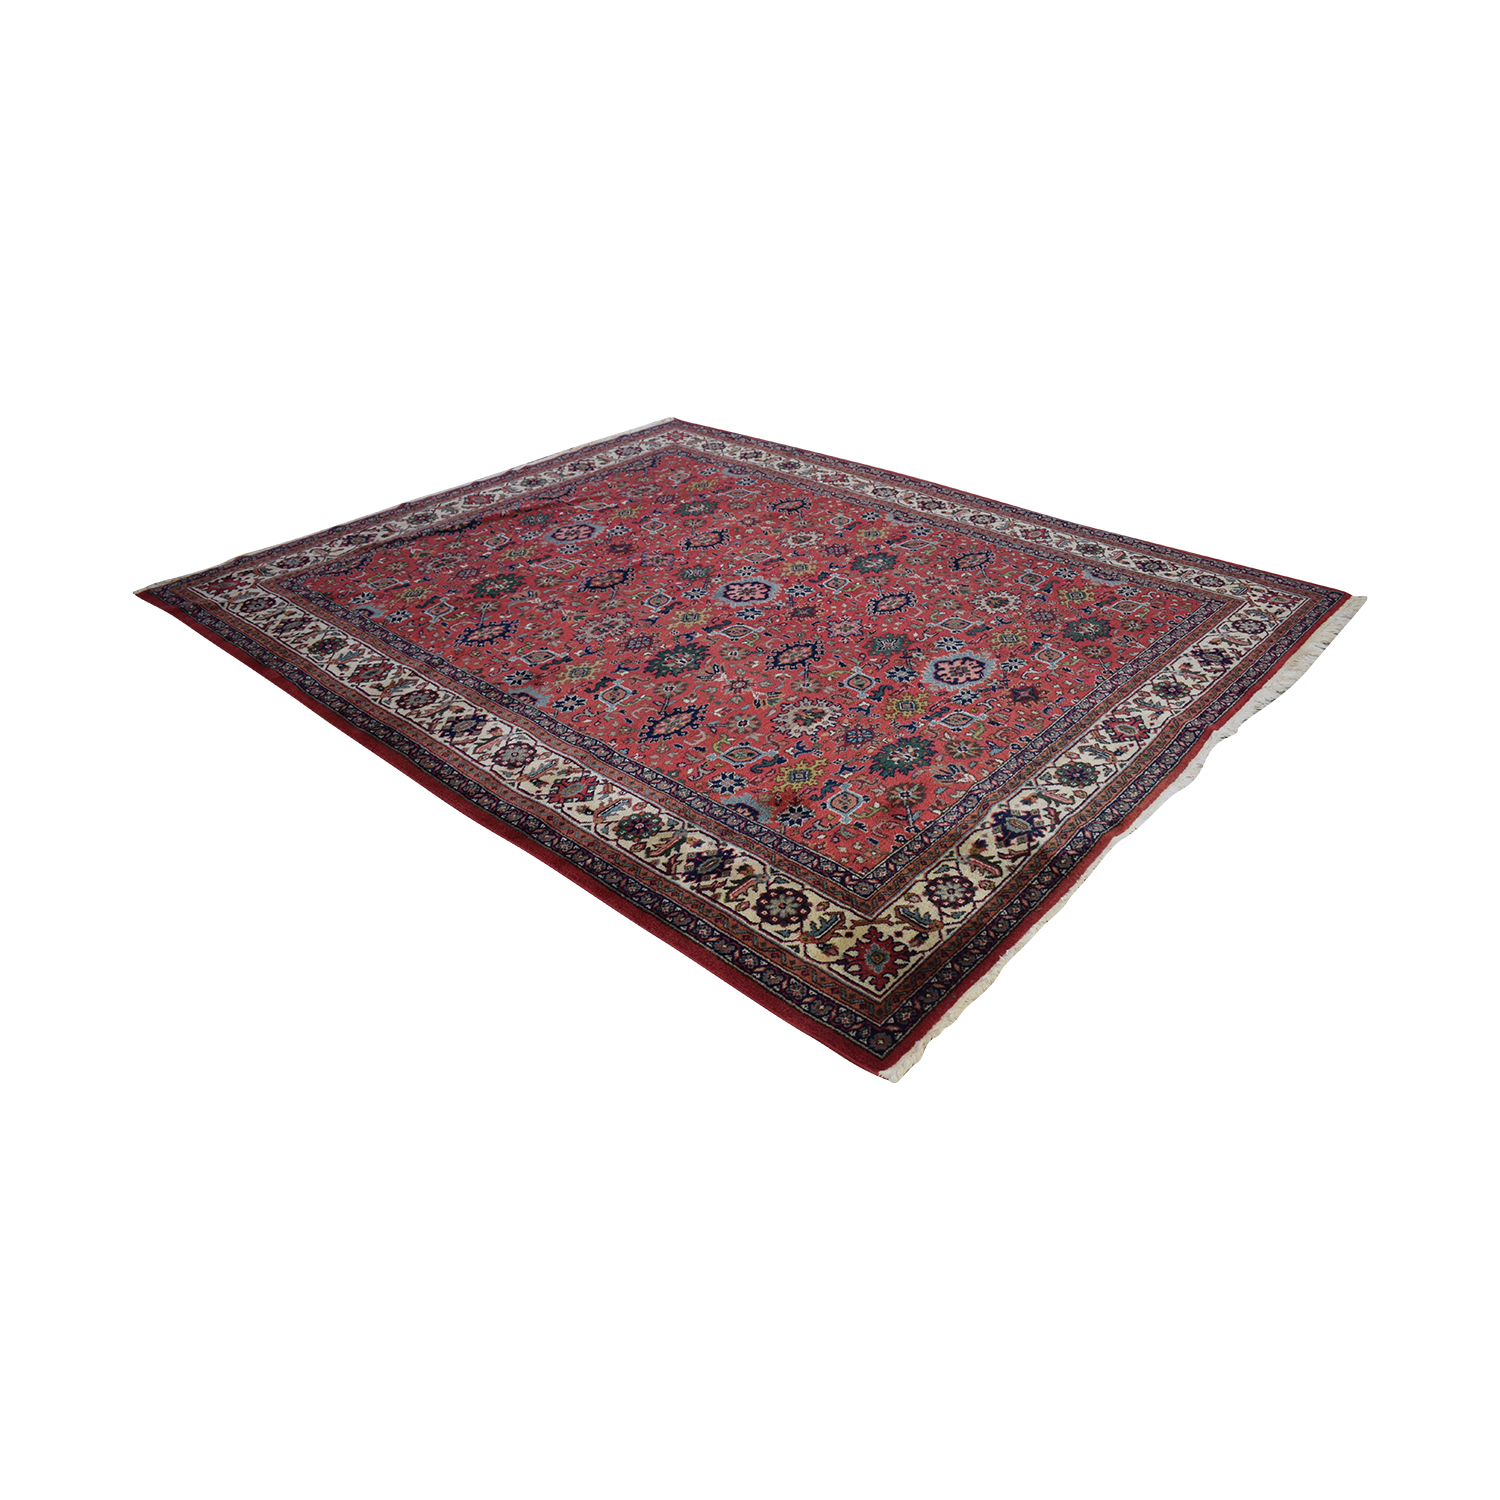 Oriental Multi-Colored Red Rug used